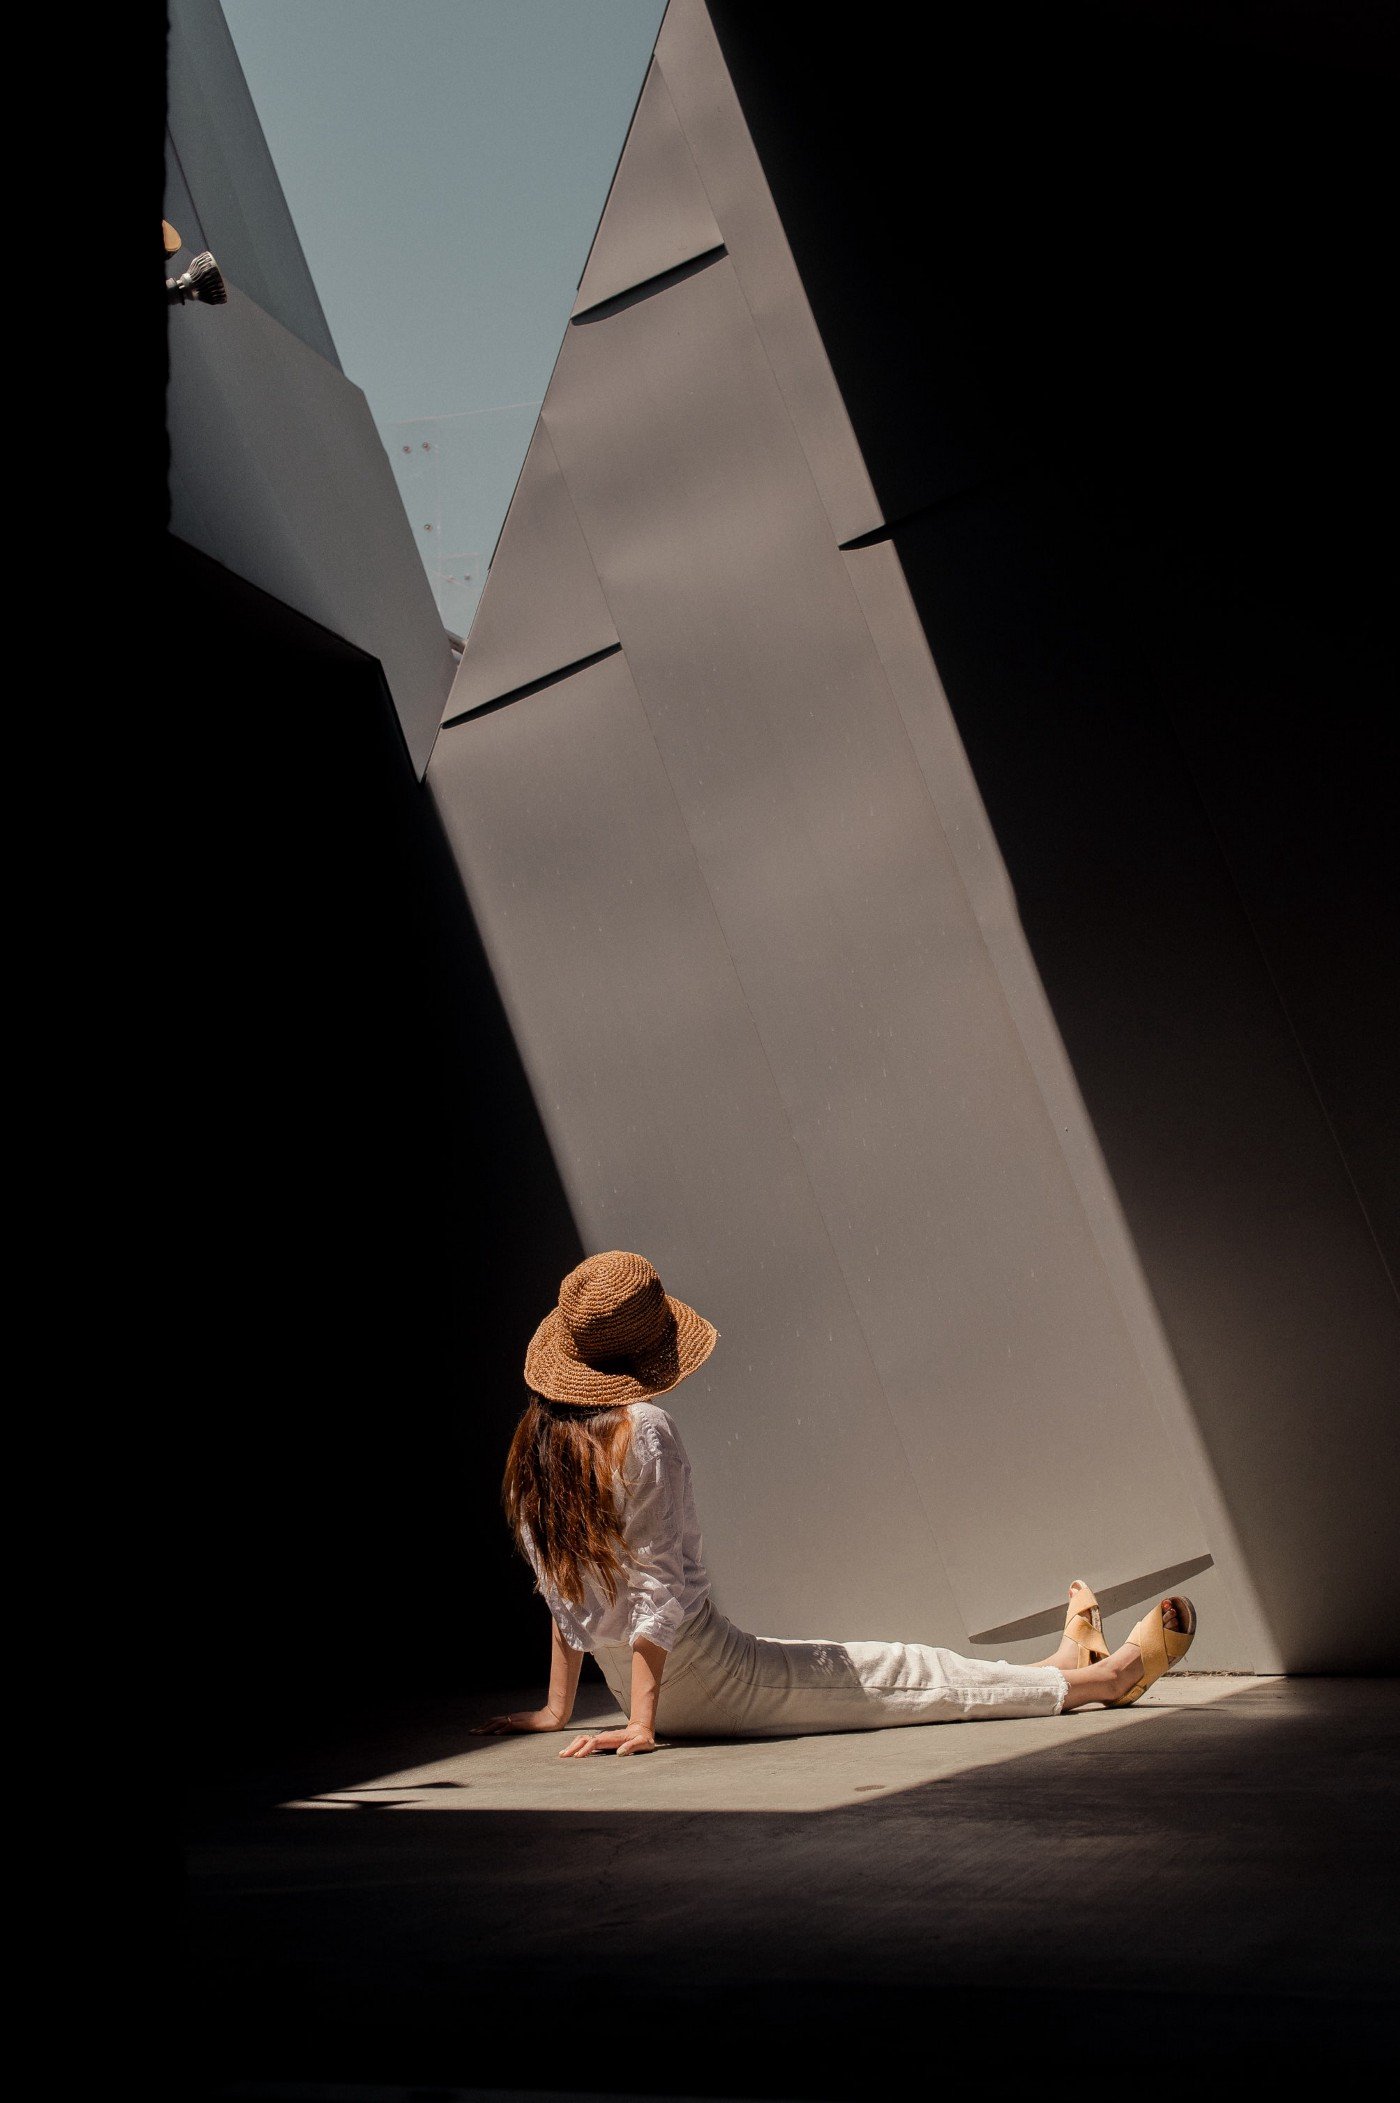 An image of a woman sitting in a building that appears to be post-modern architecture (an angular, dark building).